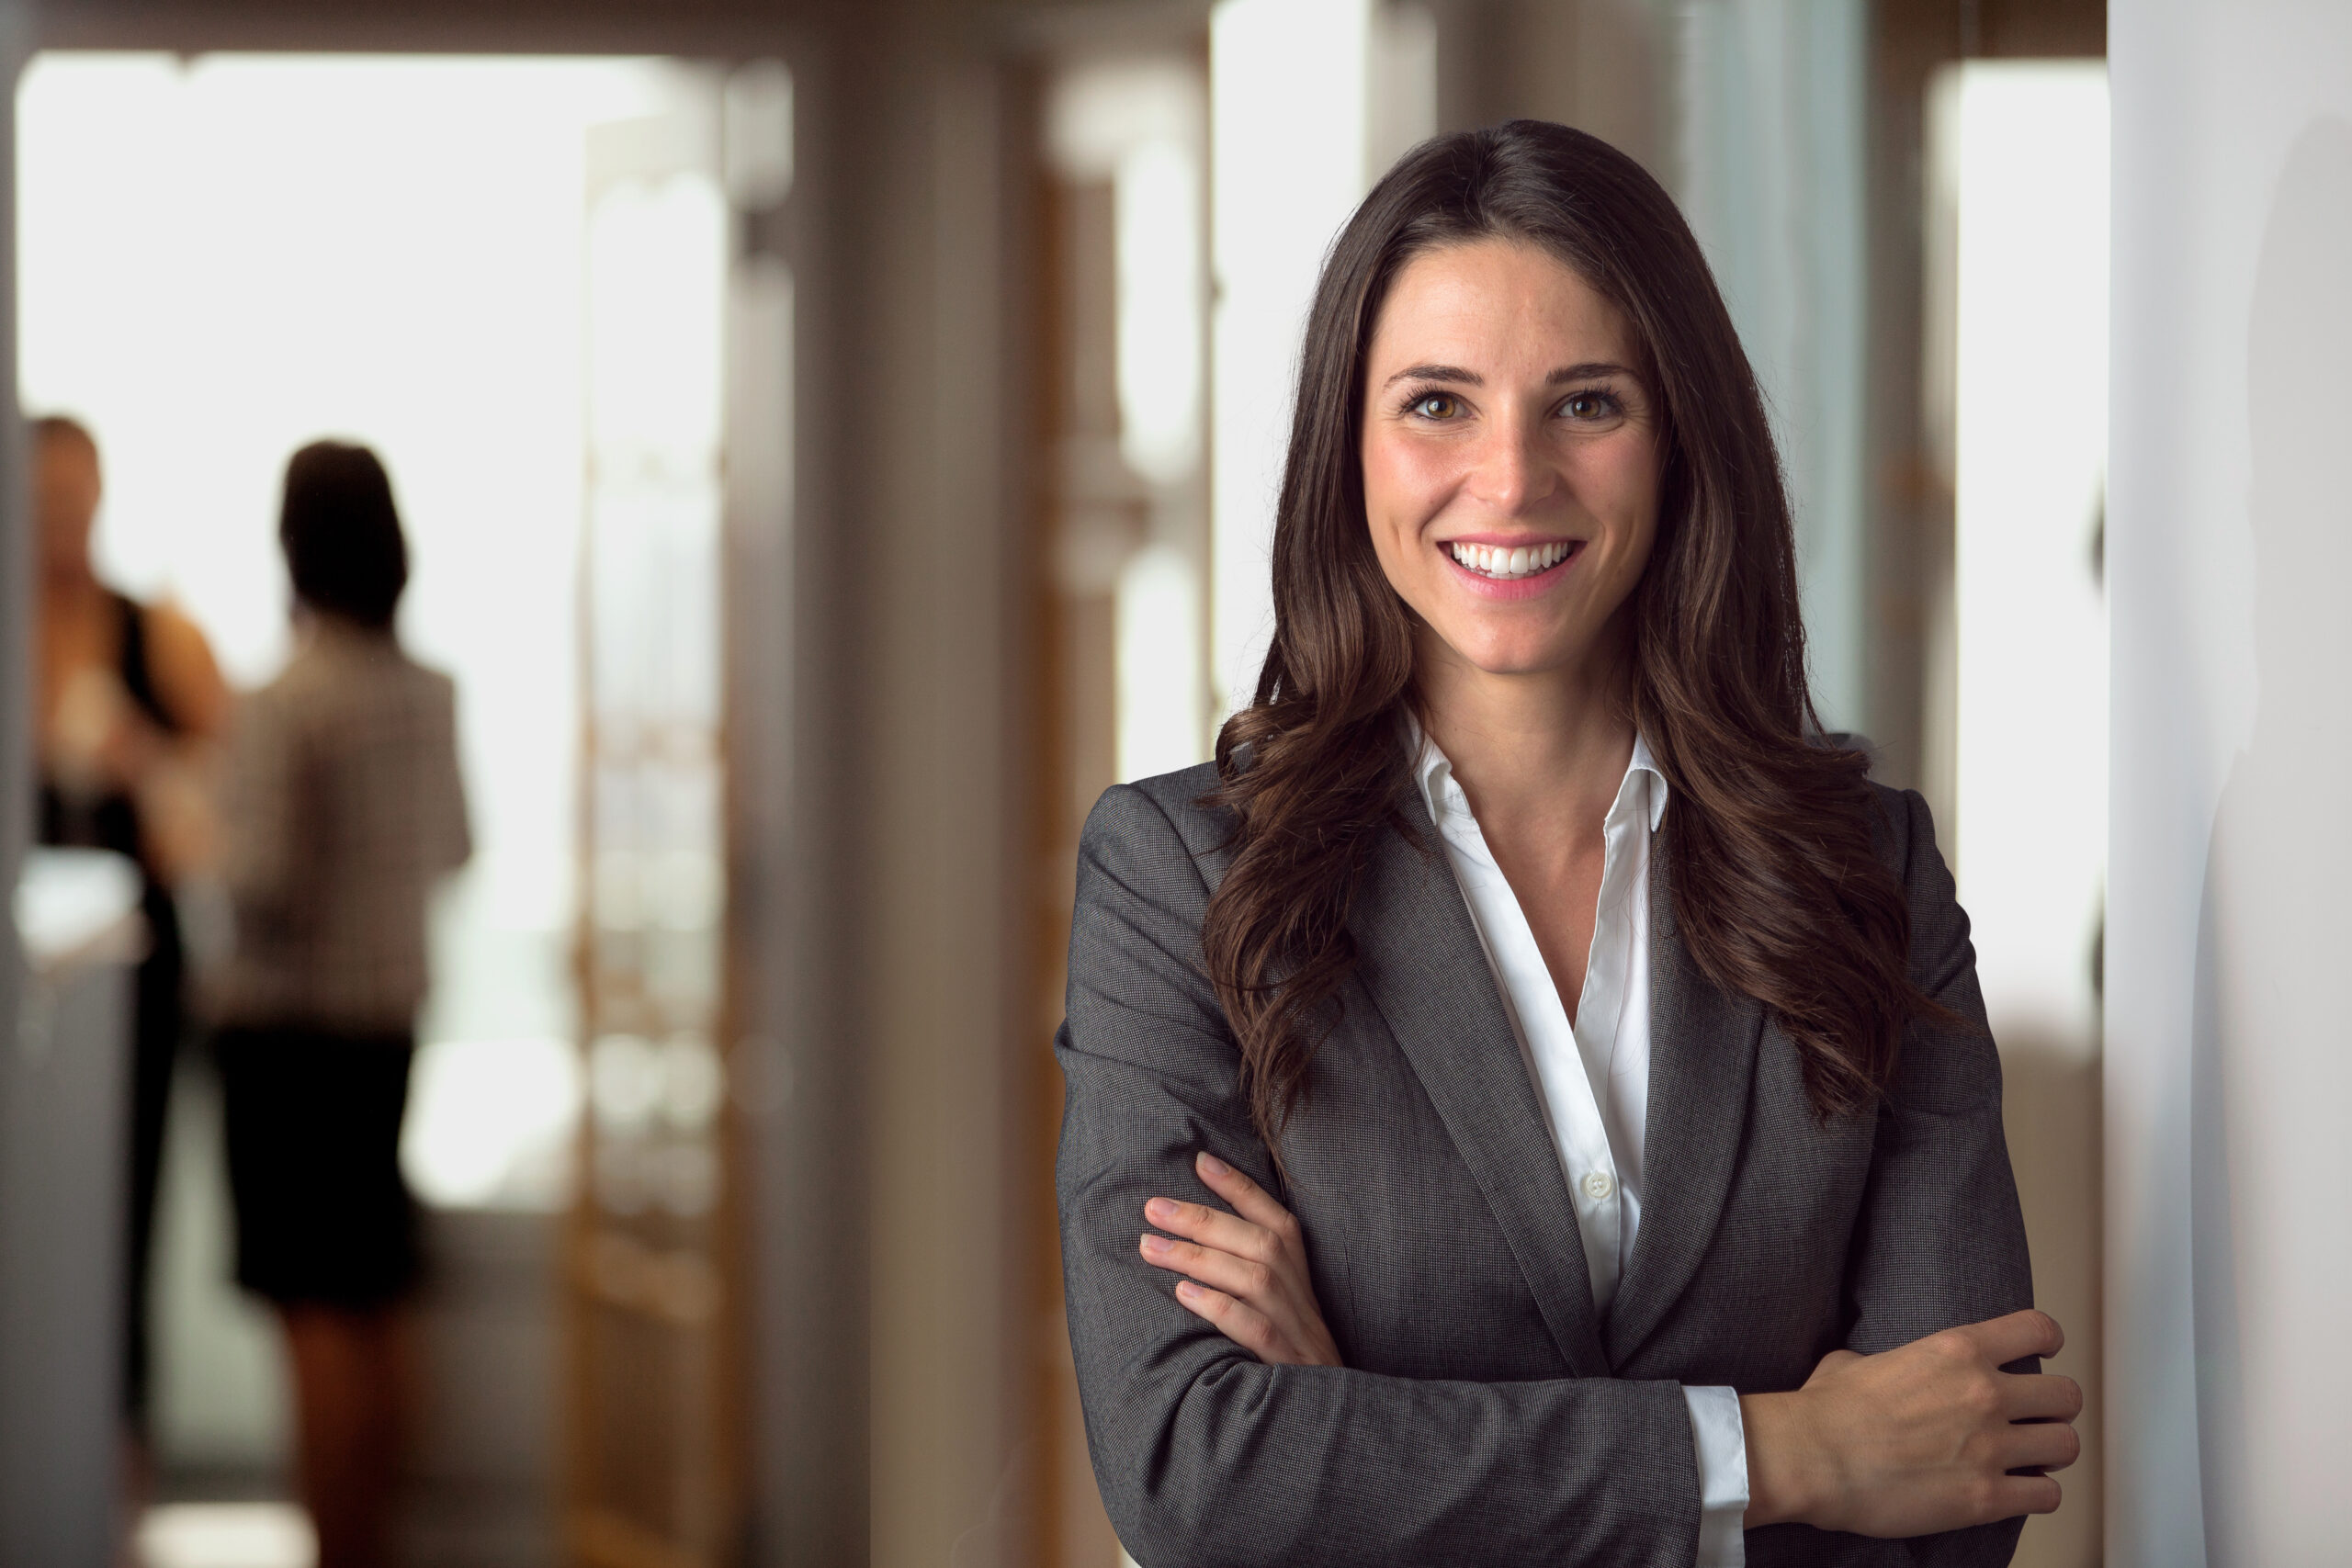 All-women boards and female CEOs in the Fortune 500, here are 5 strategies for leadership.